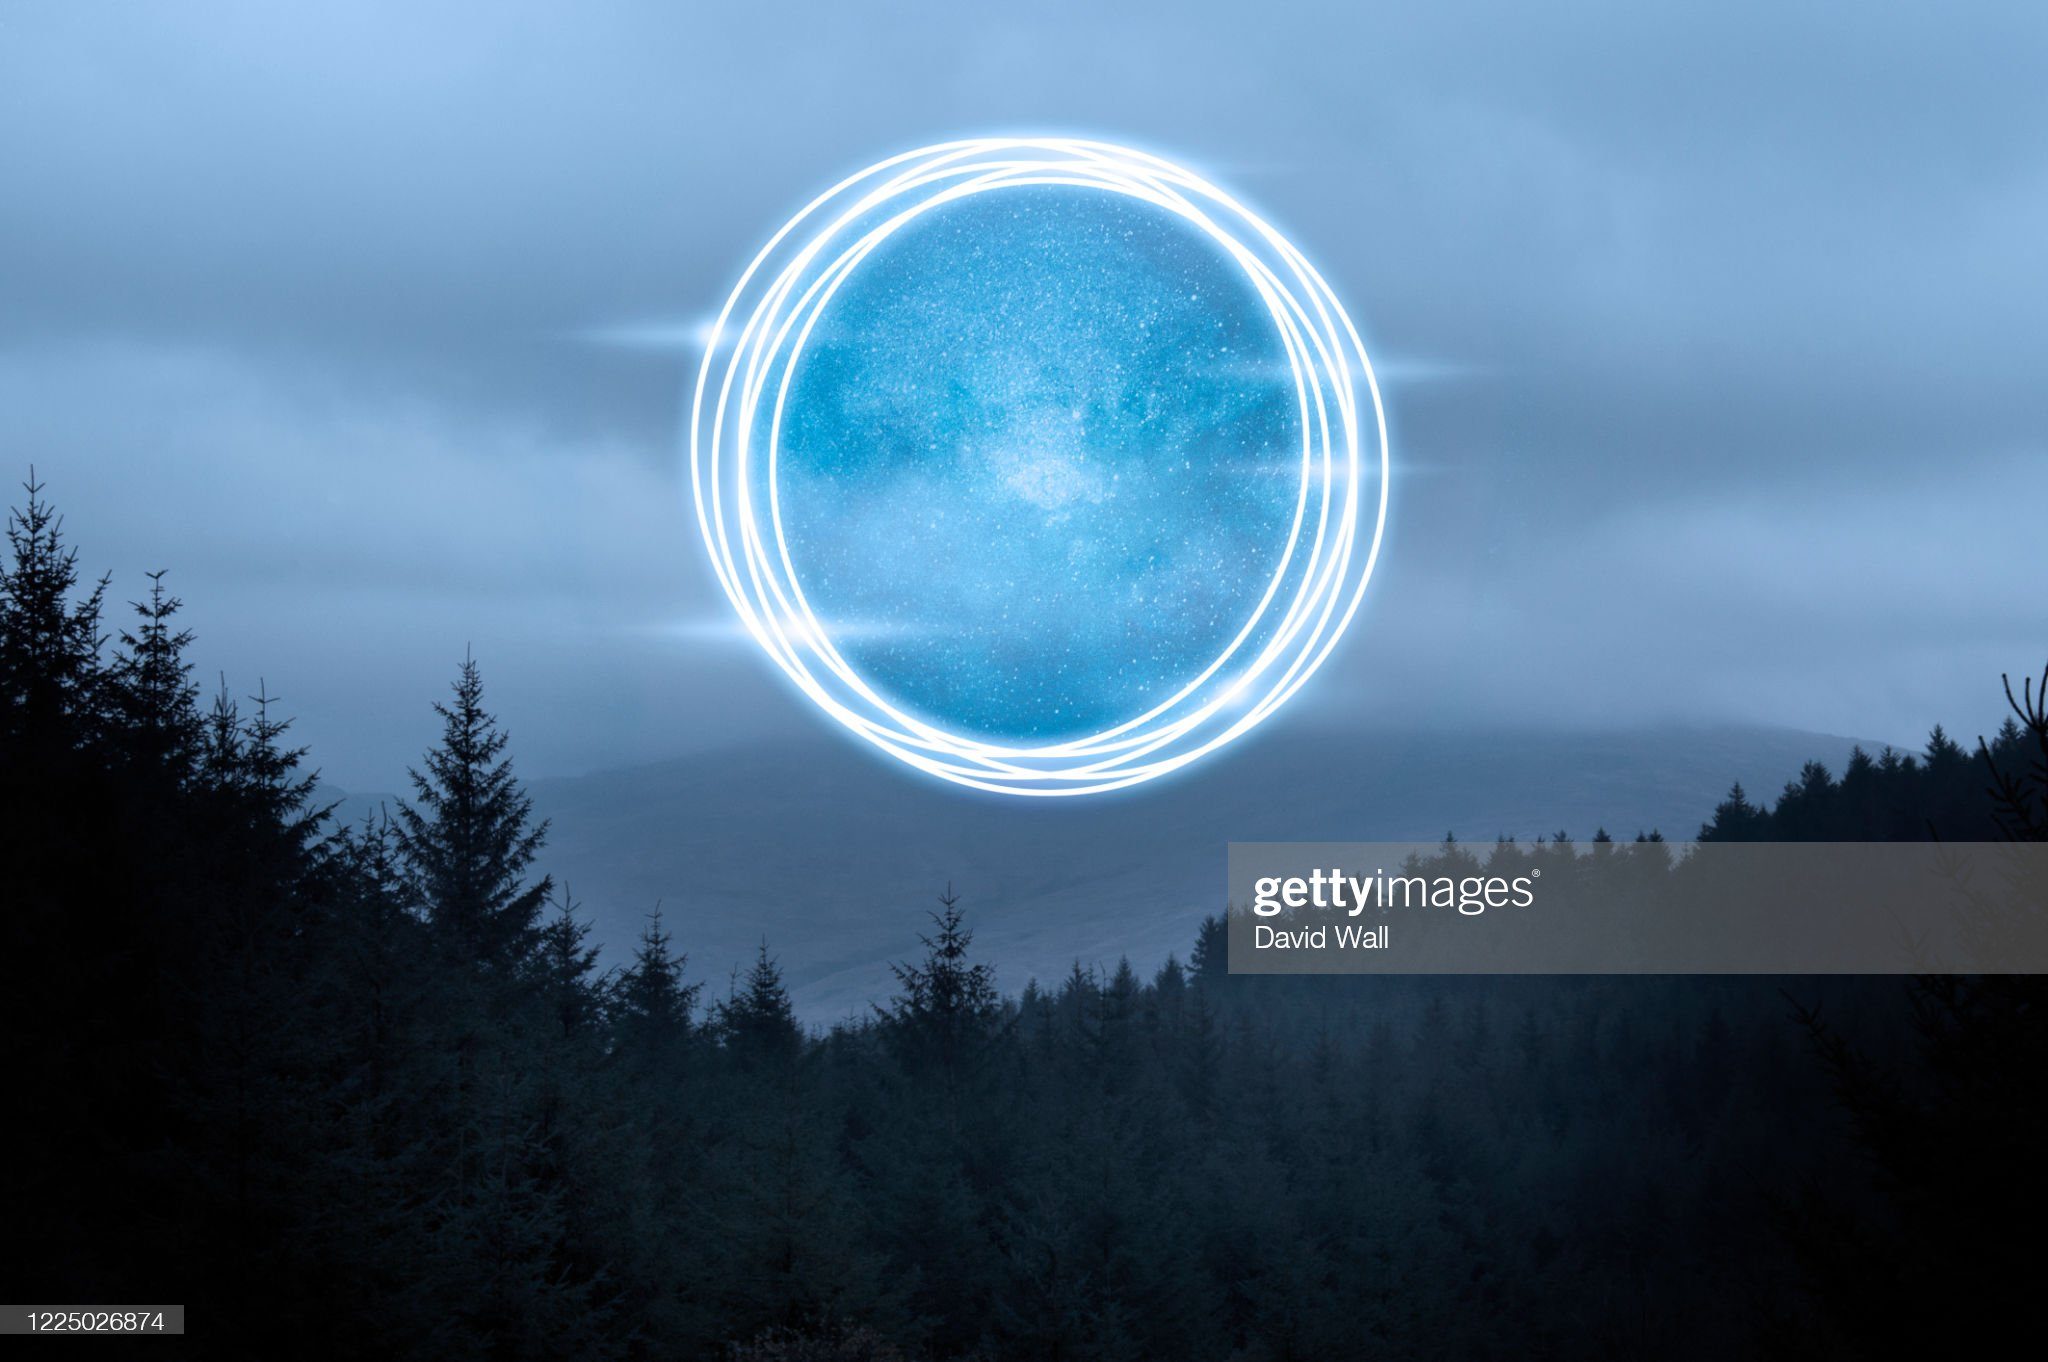 A science fiction concept. A glowing portal floating above a forest on a misty evening. : 圖庫照片